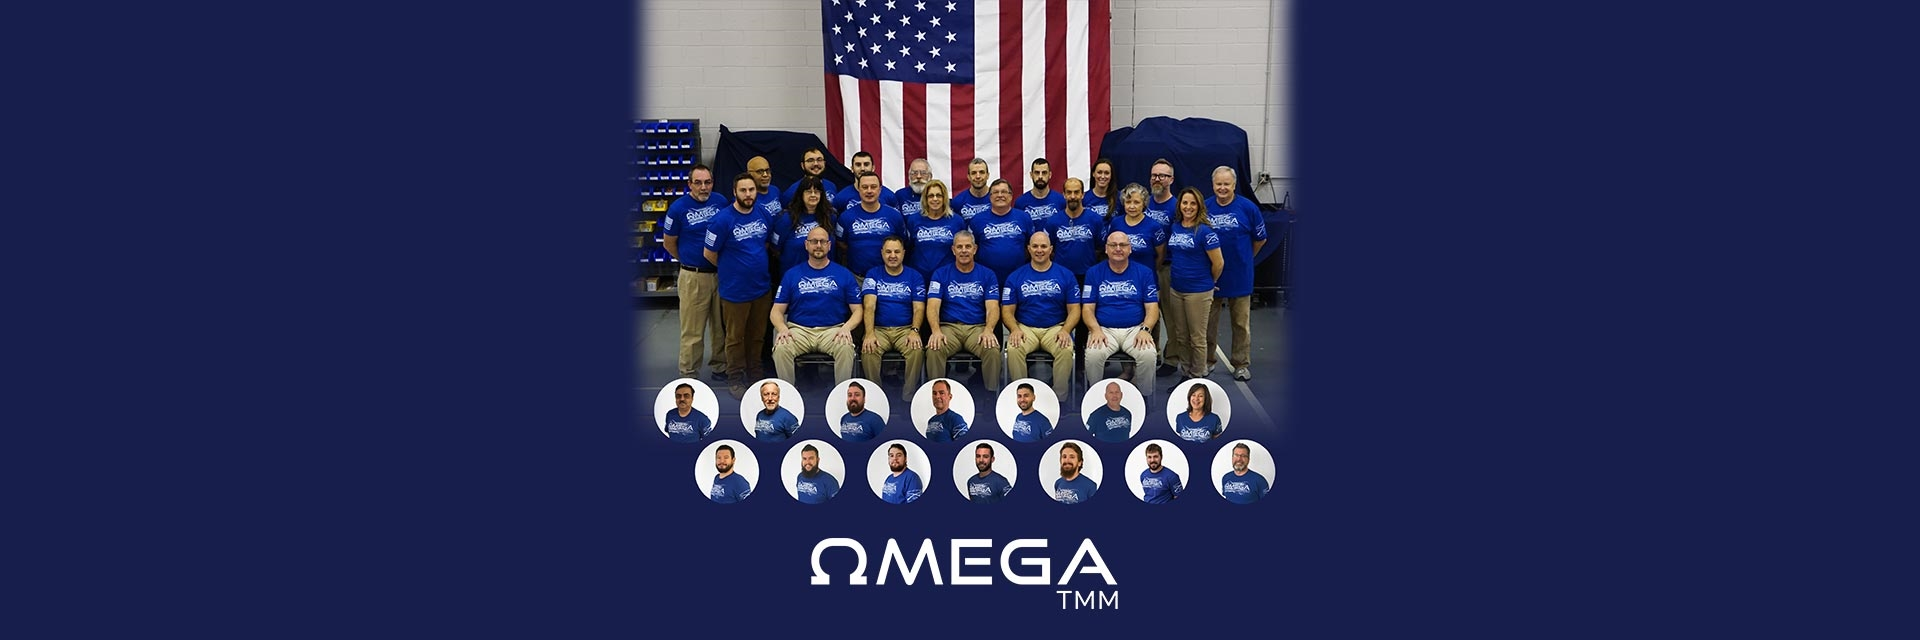 Omega TMM employees proudly manufacture and assembles measuring machines in Fairport, NY, world headquarters.  In addition, Omega TMM has a Wholly Owned Foreign Enterprise in China with 35 employees.